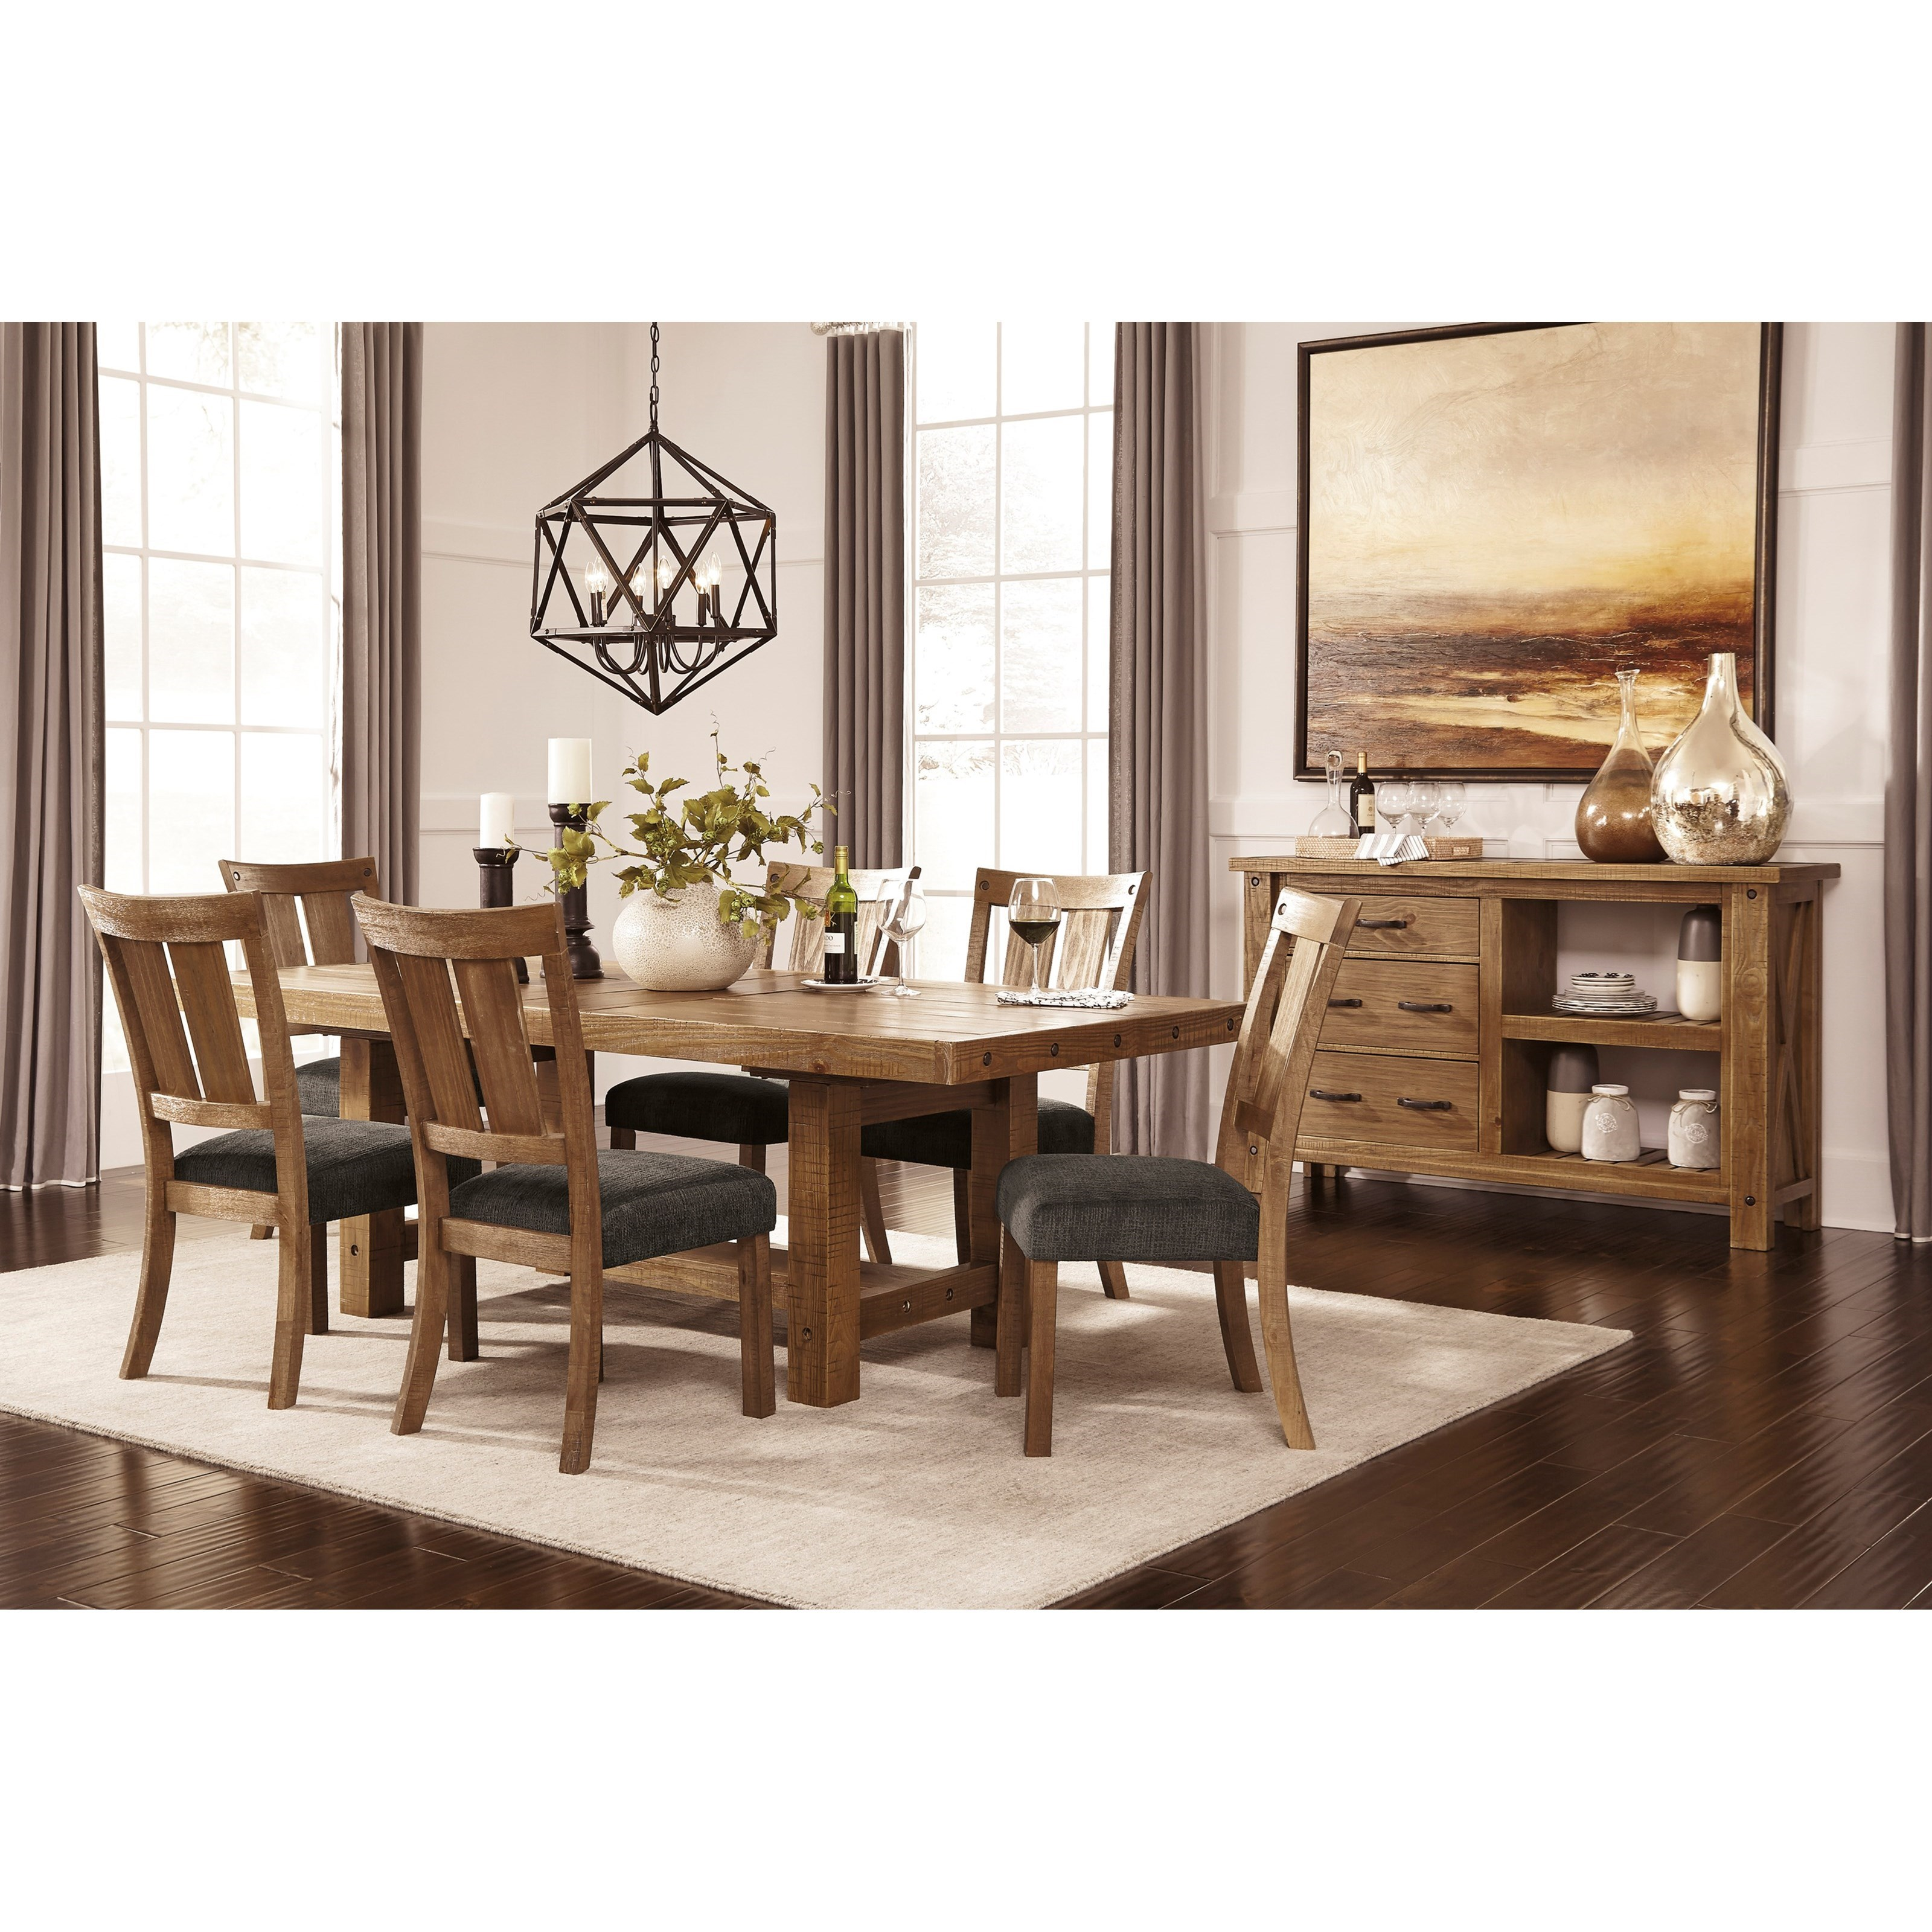 Signature design by ashley tamilo casual dining room group for Casual dining room furniture